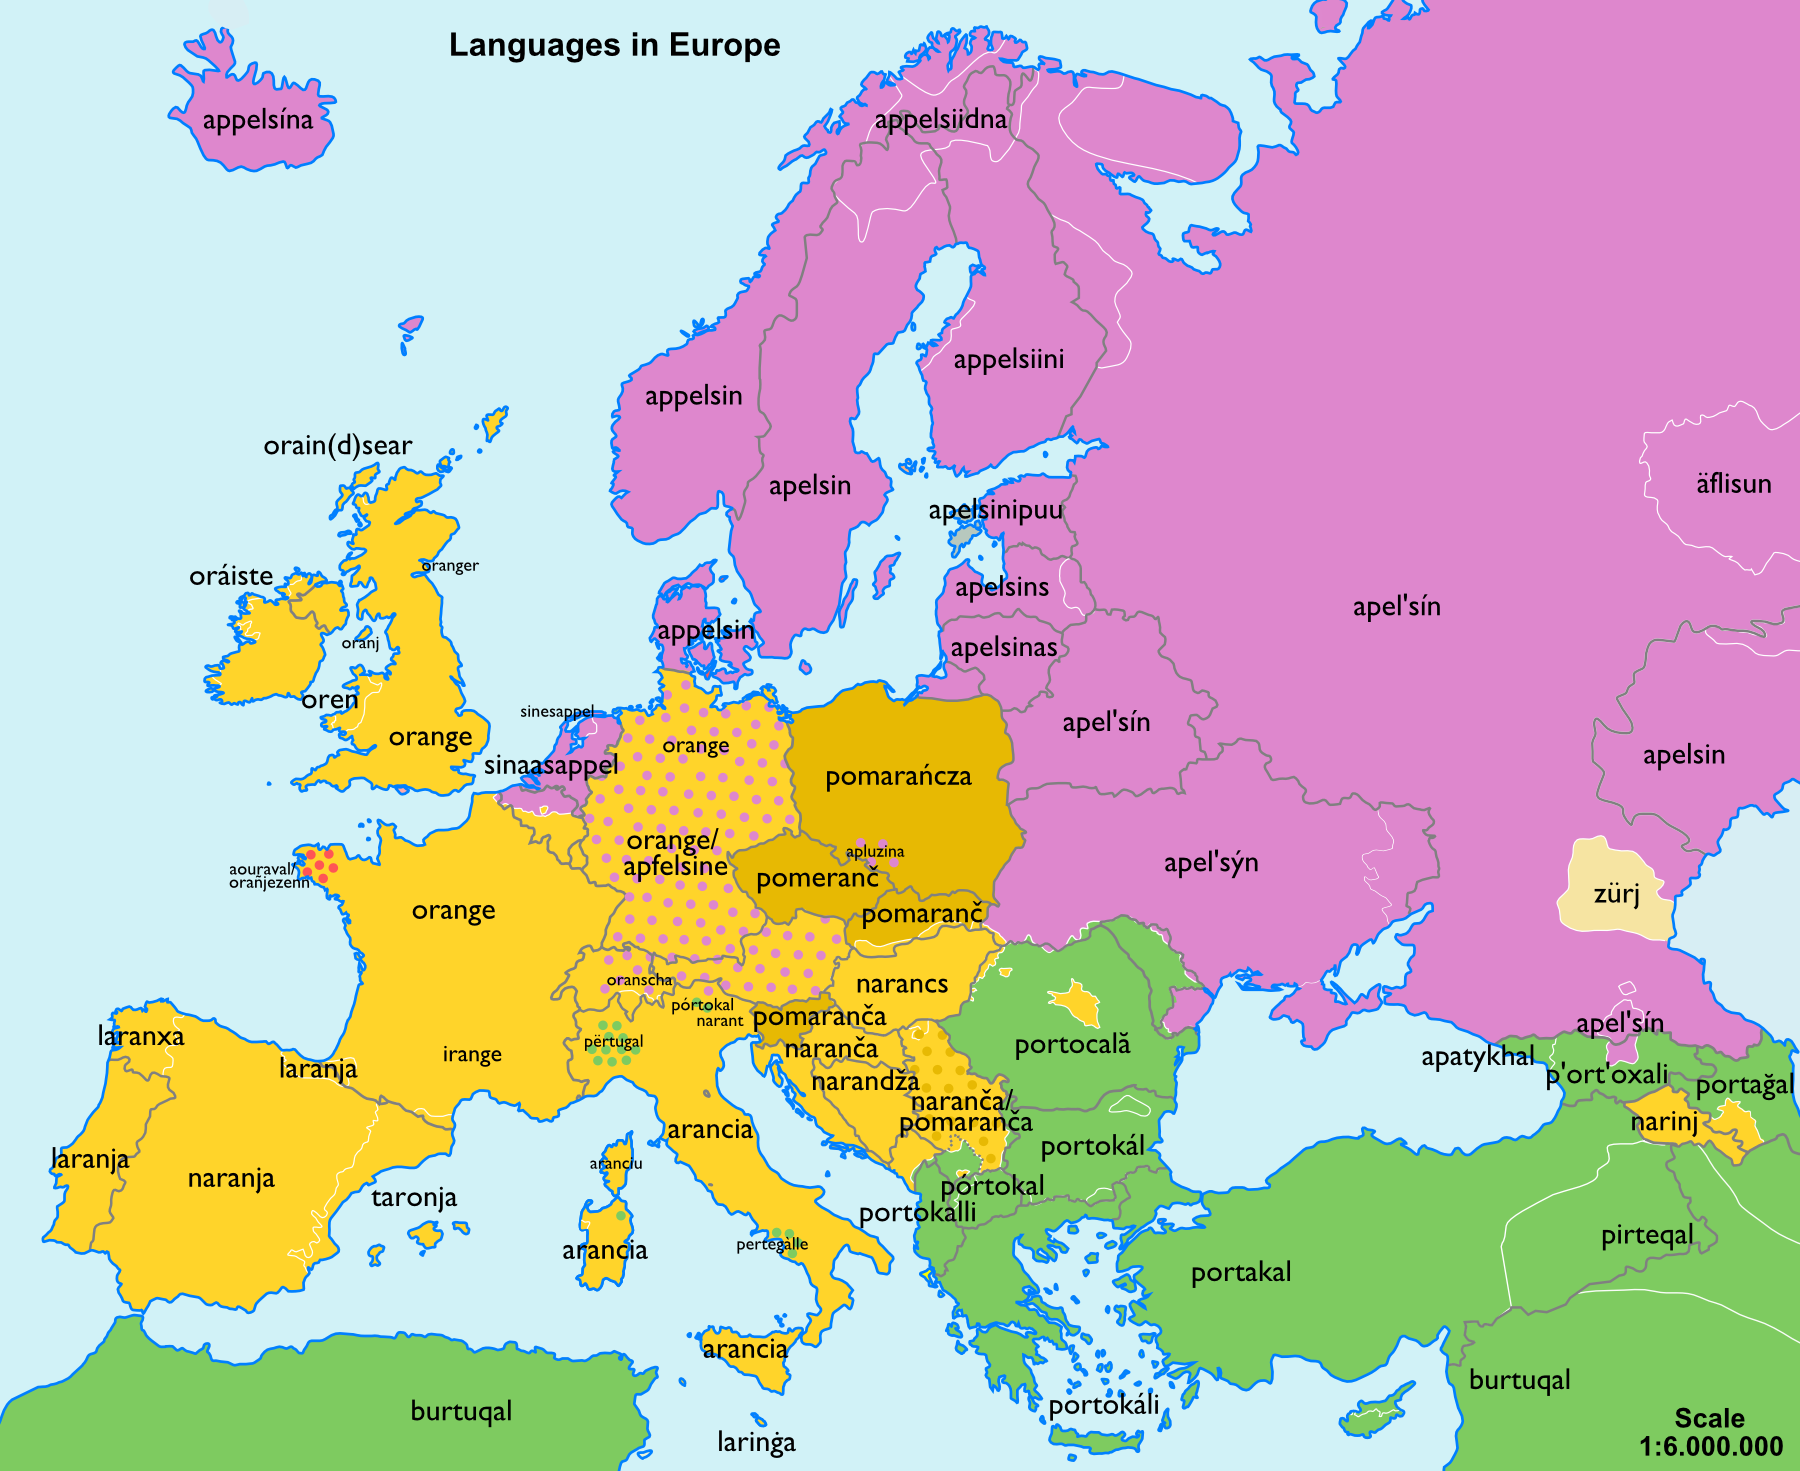 Marvelous European Countries In French Language Part - 3: A Cucumber Map Of Europe (linguistic Distribution)